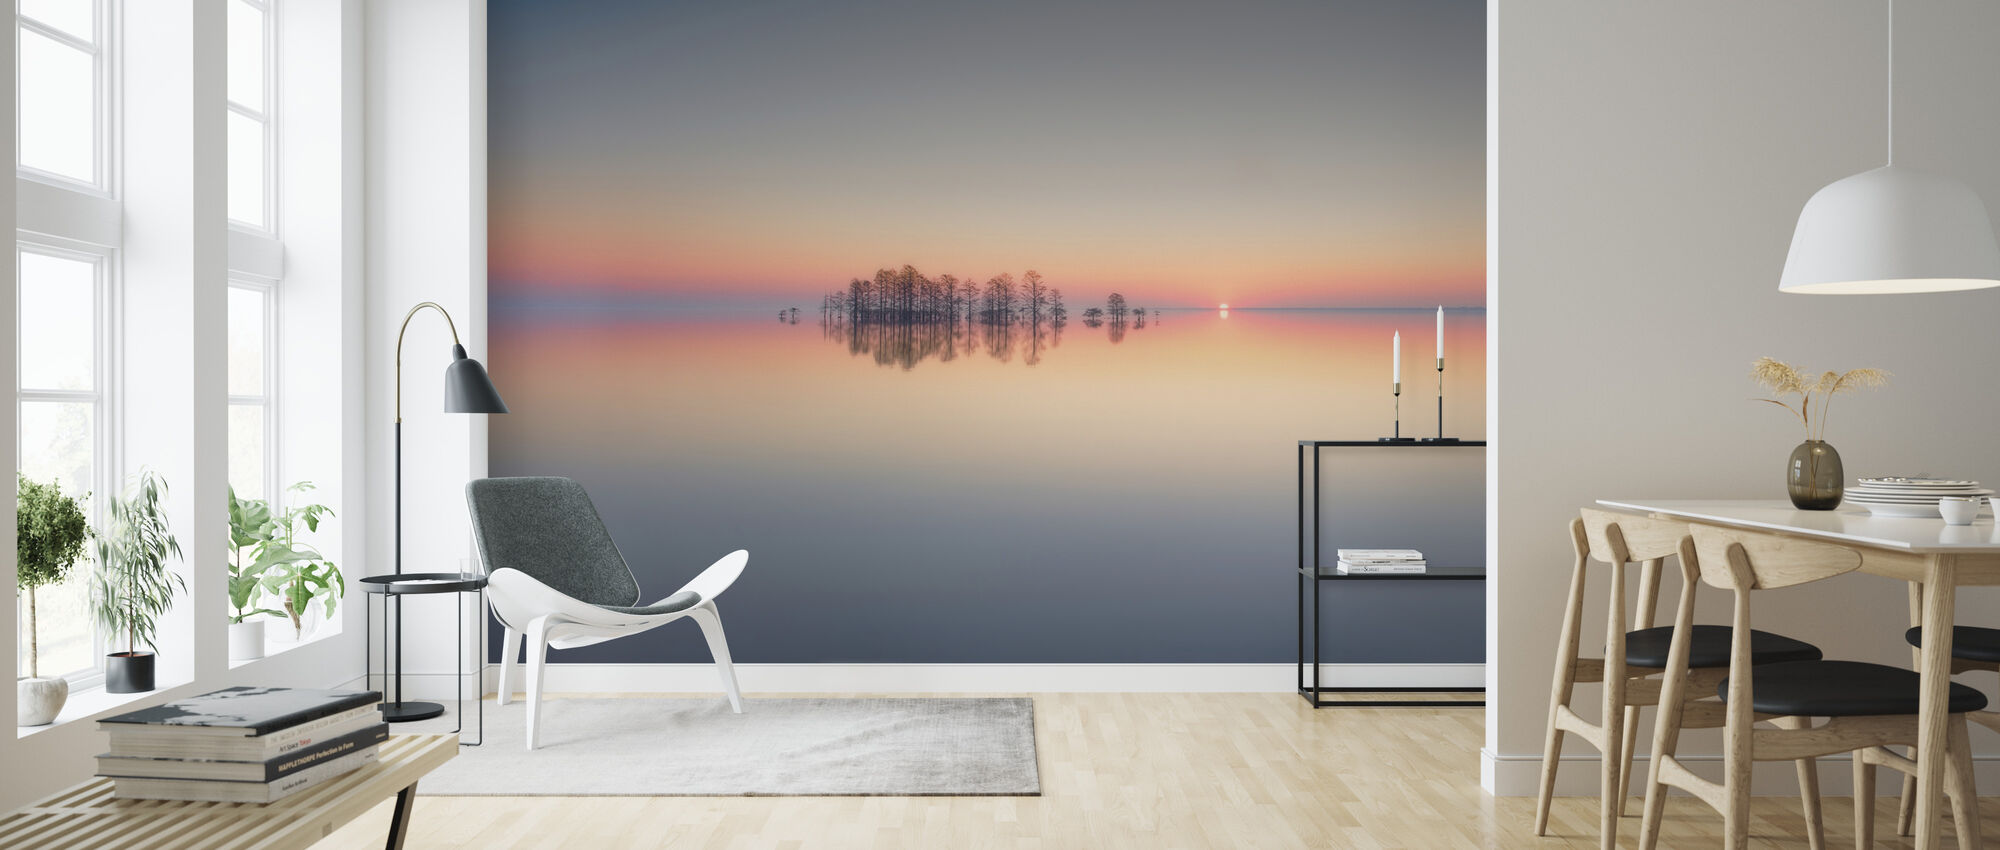 Dawn at Lake Mattamuskeet - Wallpaper - Living Room